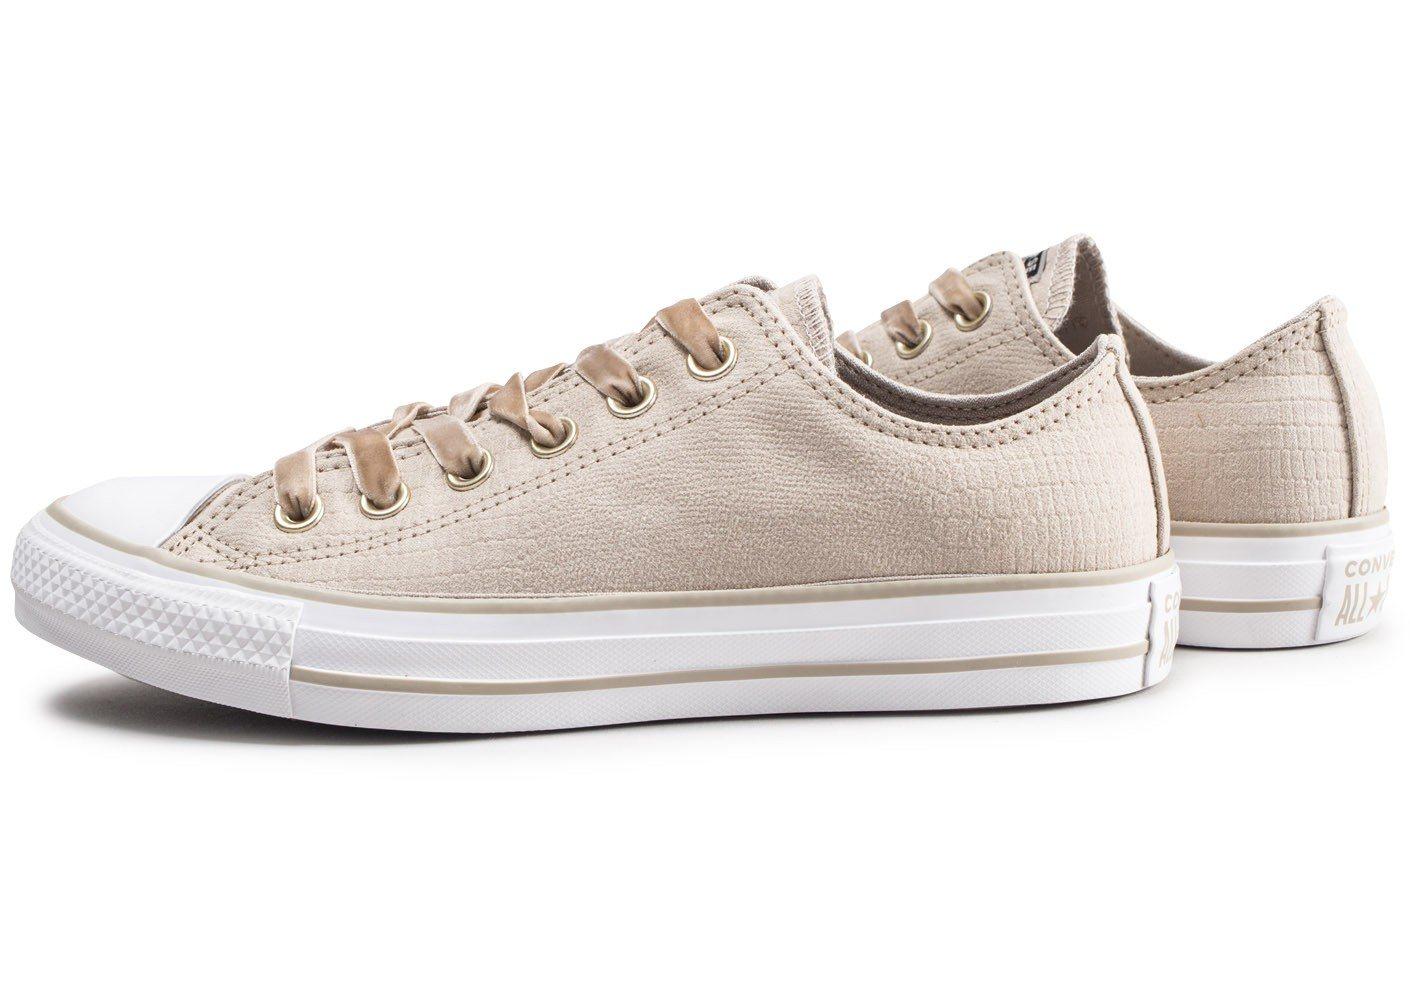 Converse Chuck Taylor All Star Low beige femme - Chaussures ...